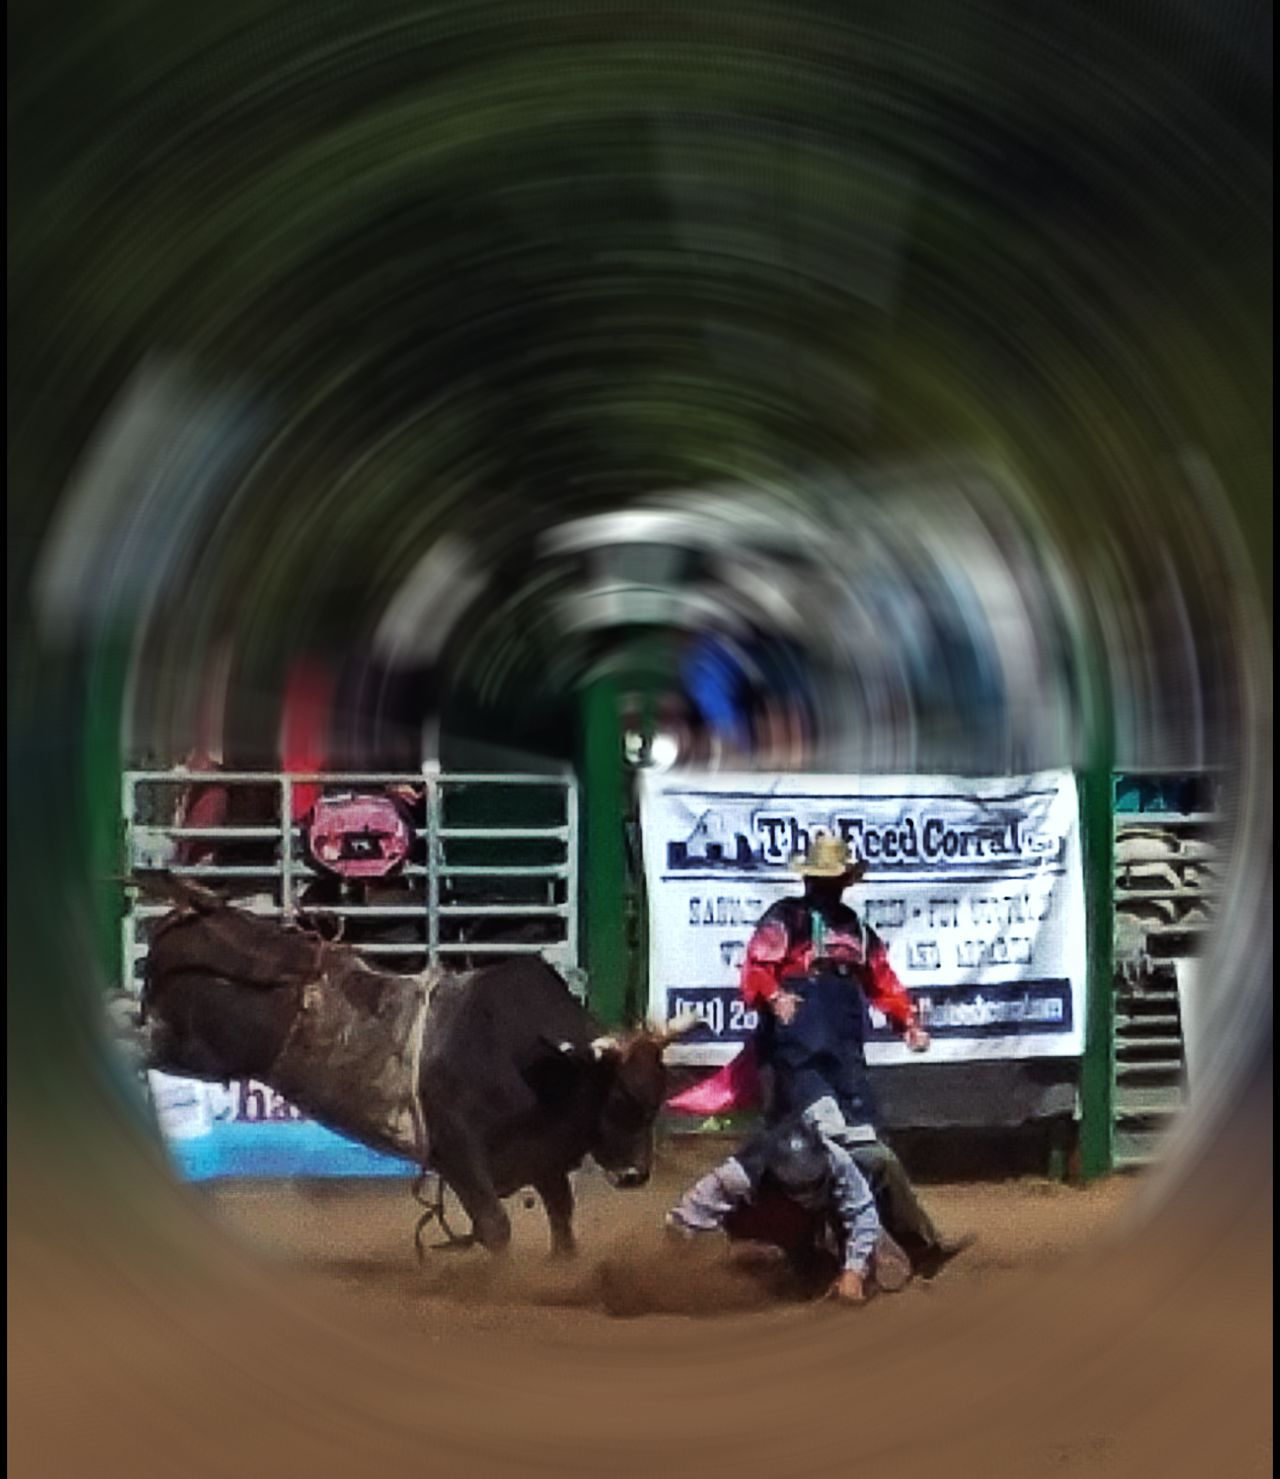 Day at the rodeo... Just tossed! Newport Oregon Lincoln County Fair Rodeo ❤ AndroidPhotography ToolWiz Photos Photo Editor Photo Wonder My Photo Album ♡ My Artwork 🌹